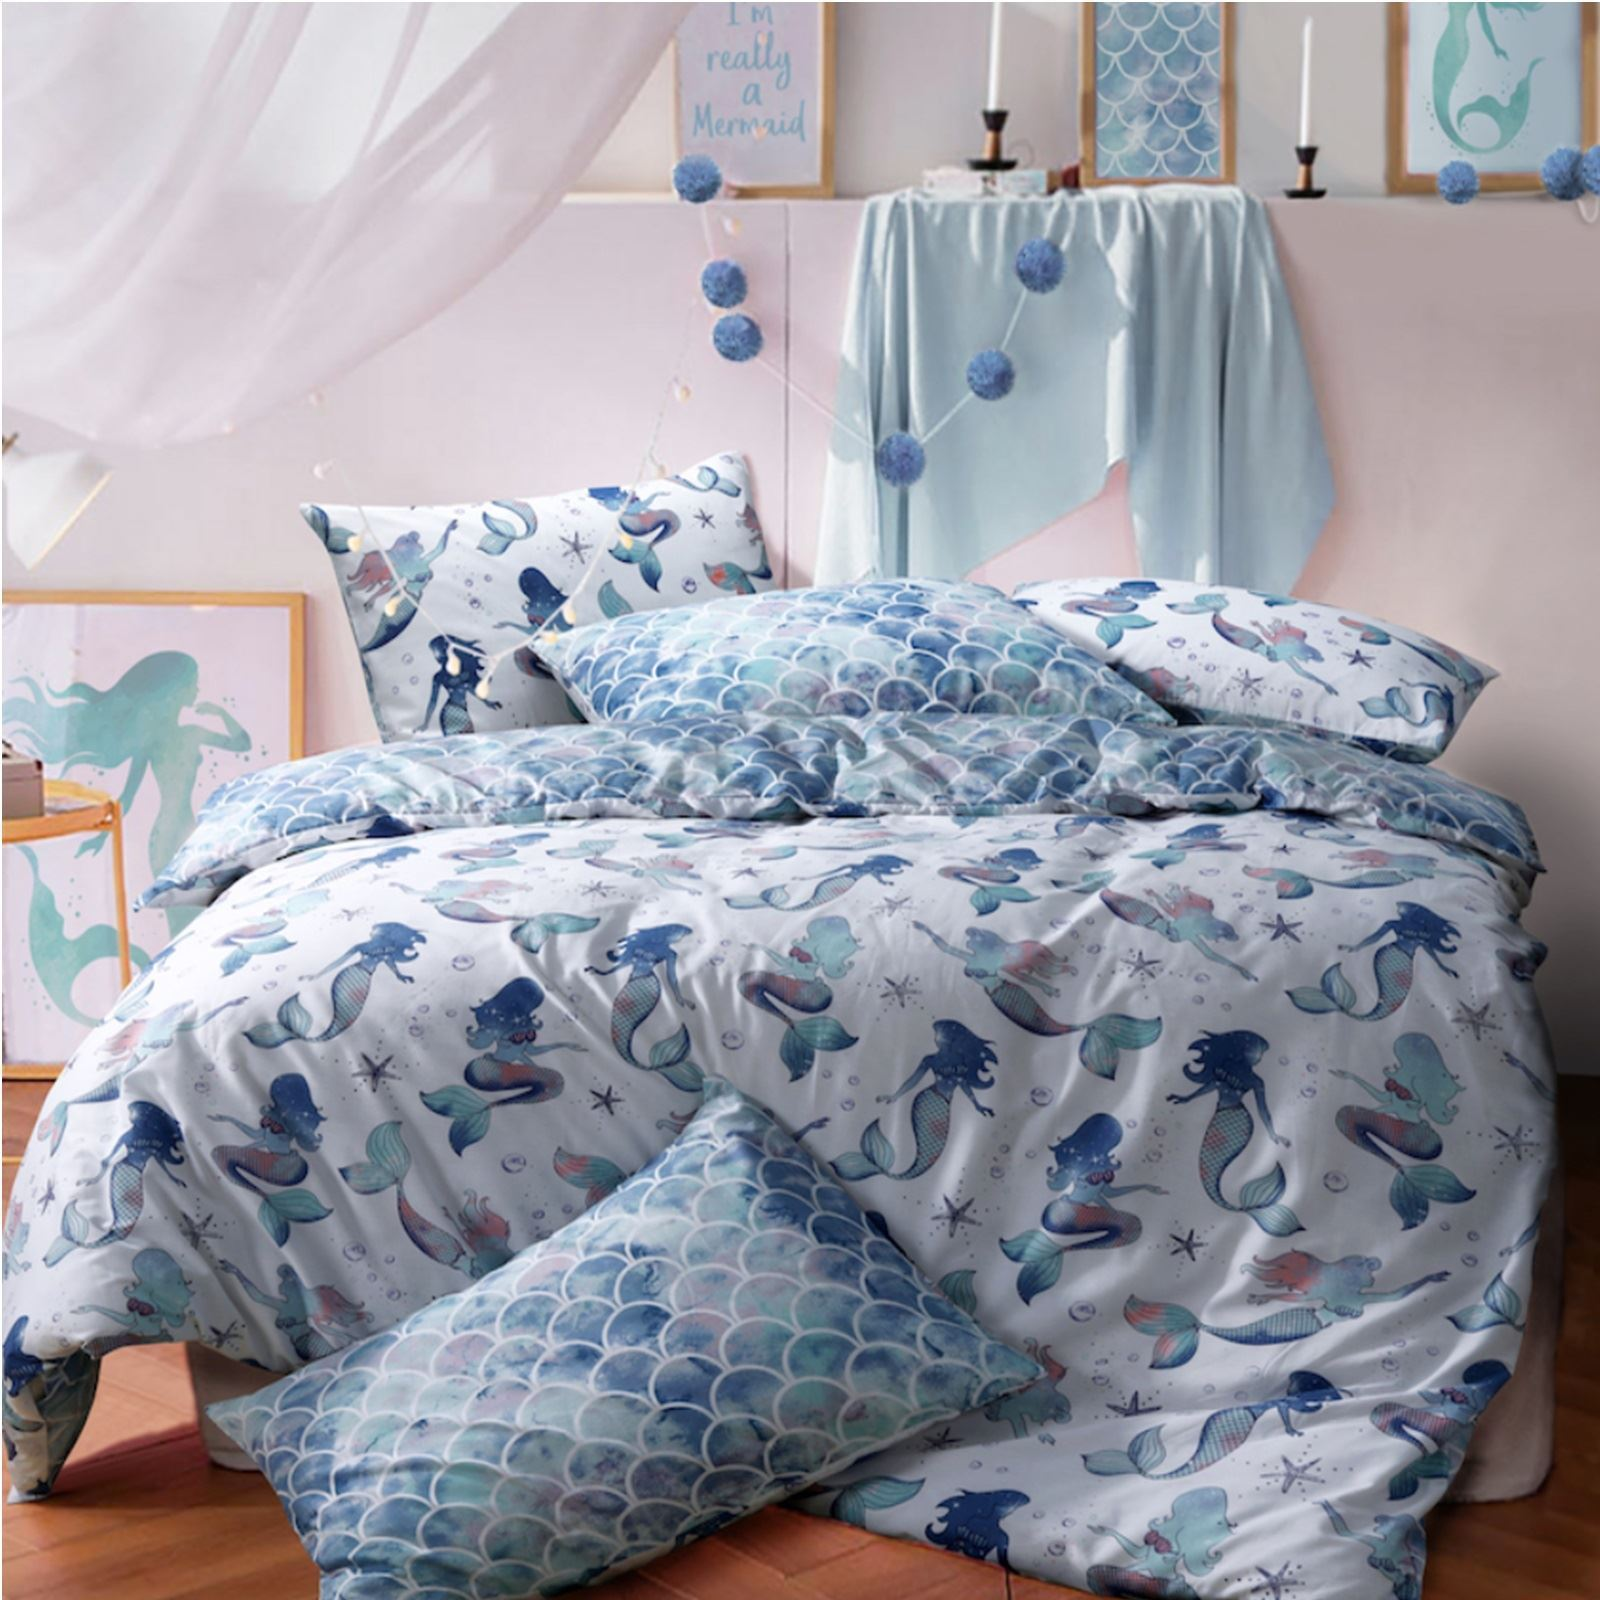 Mermaid Queen Blue Reversible Duvet Cover Quilt Bedding Set